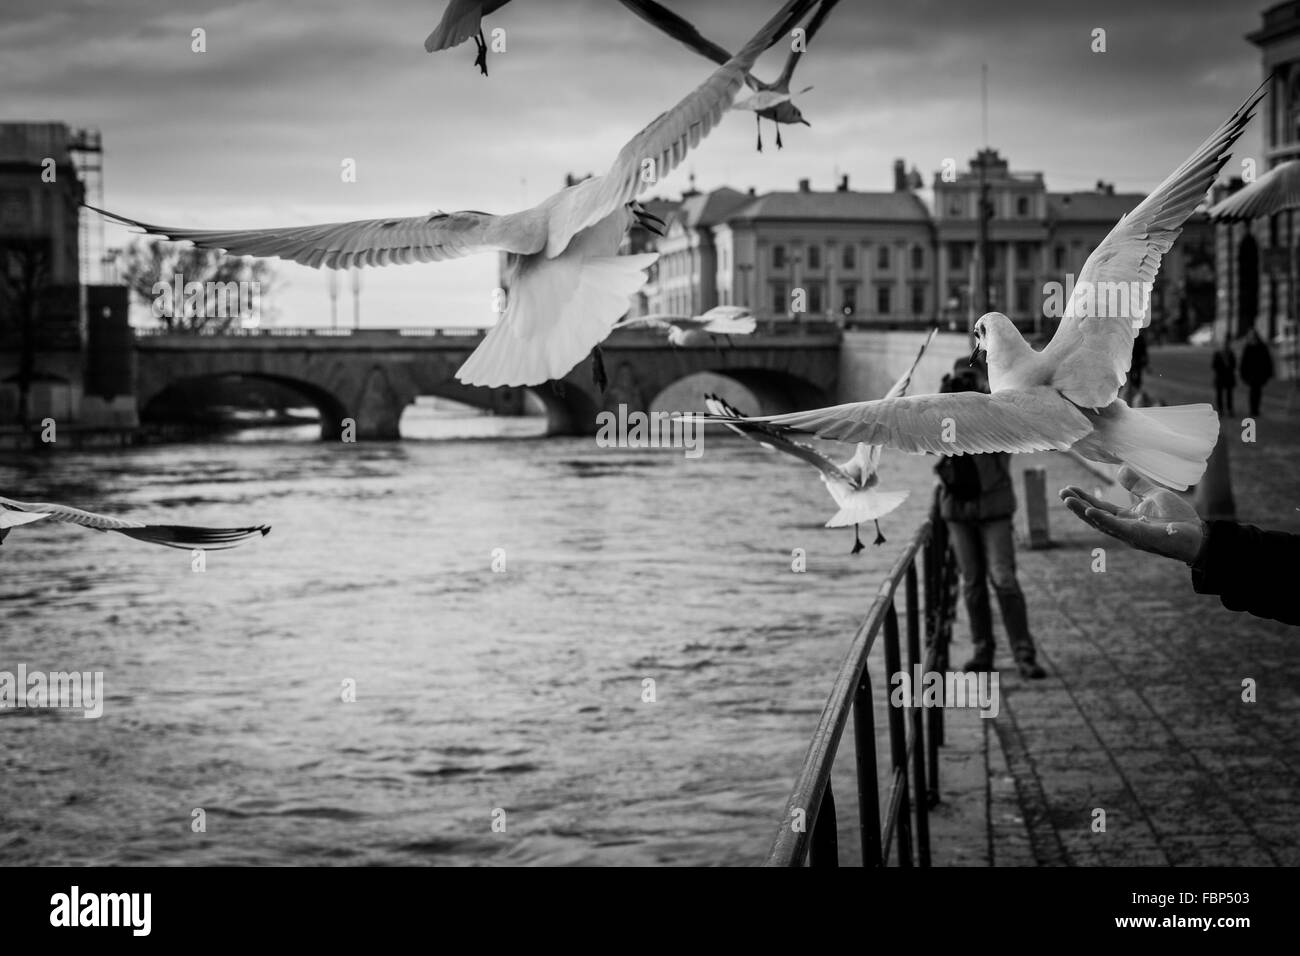 Flying Seagulls With Embankment And Bridge On Background Stock Photo